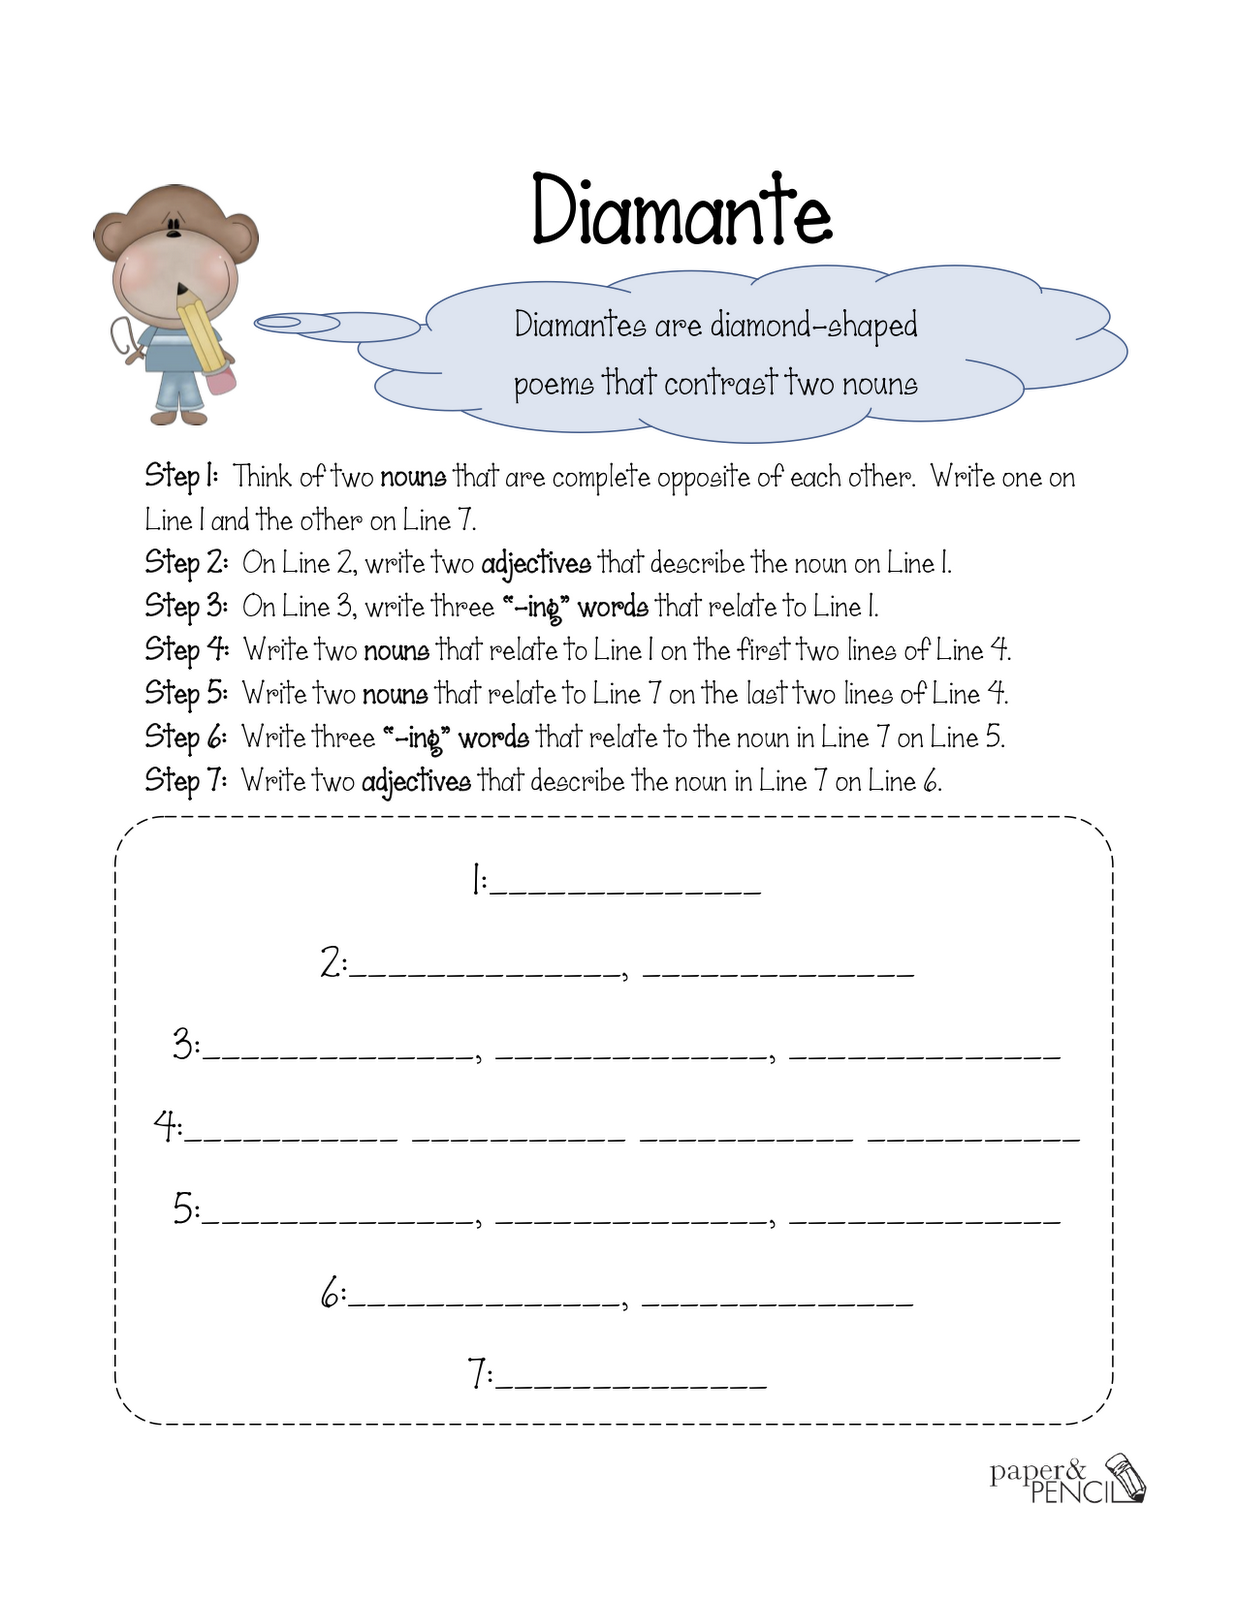 Diamante Poem Printable | Enjoy and please follow me. ..Oh, and I